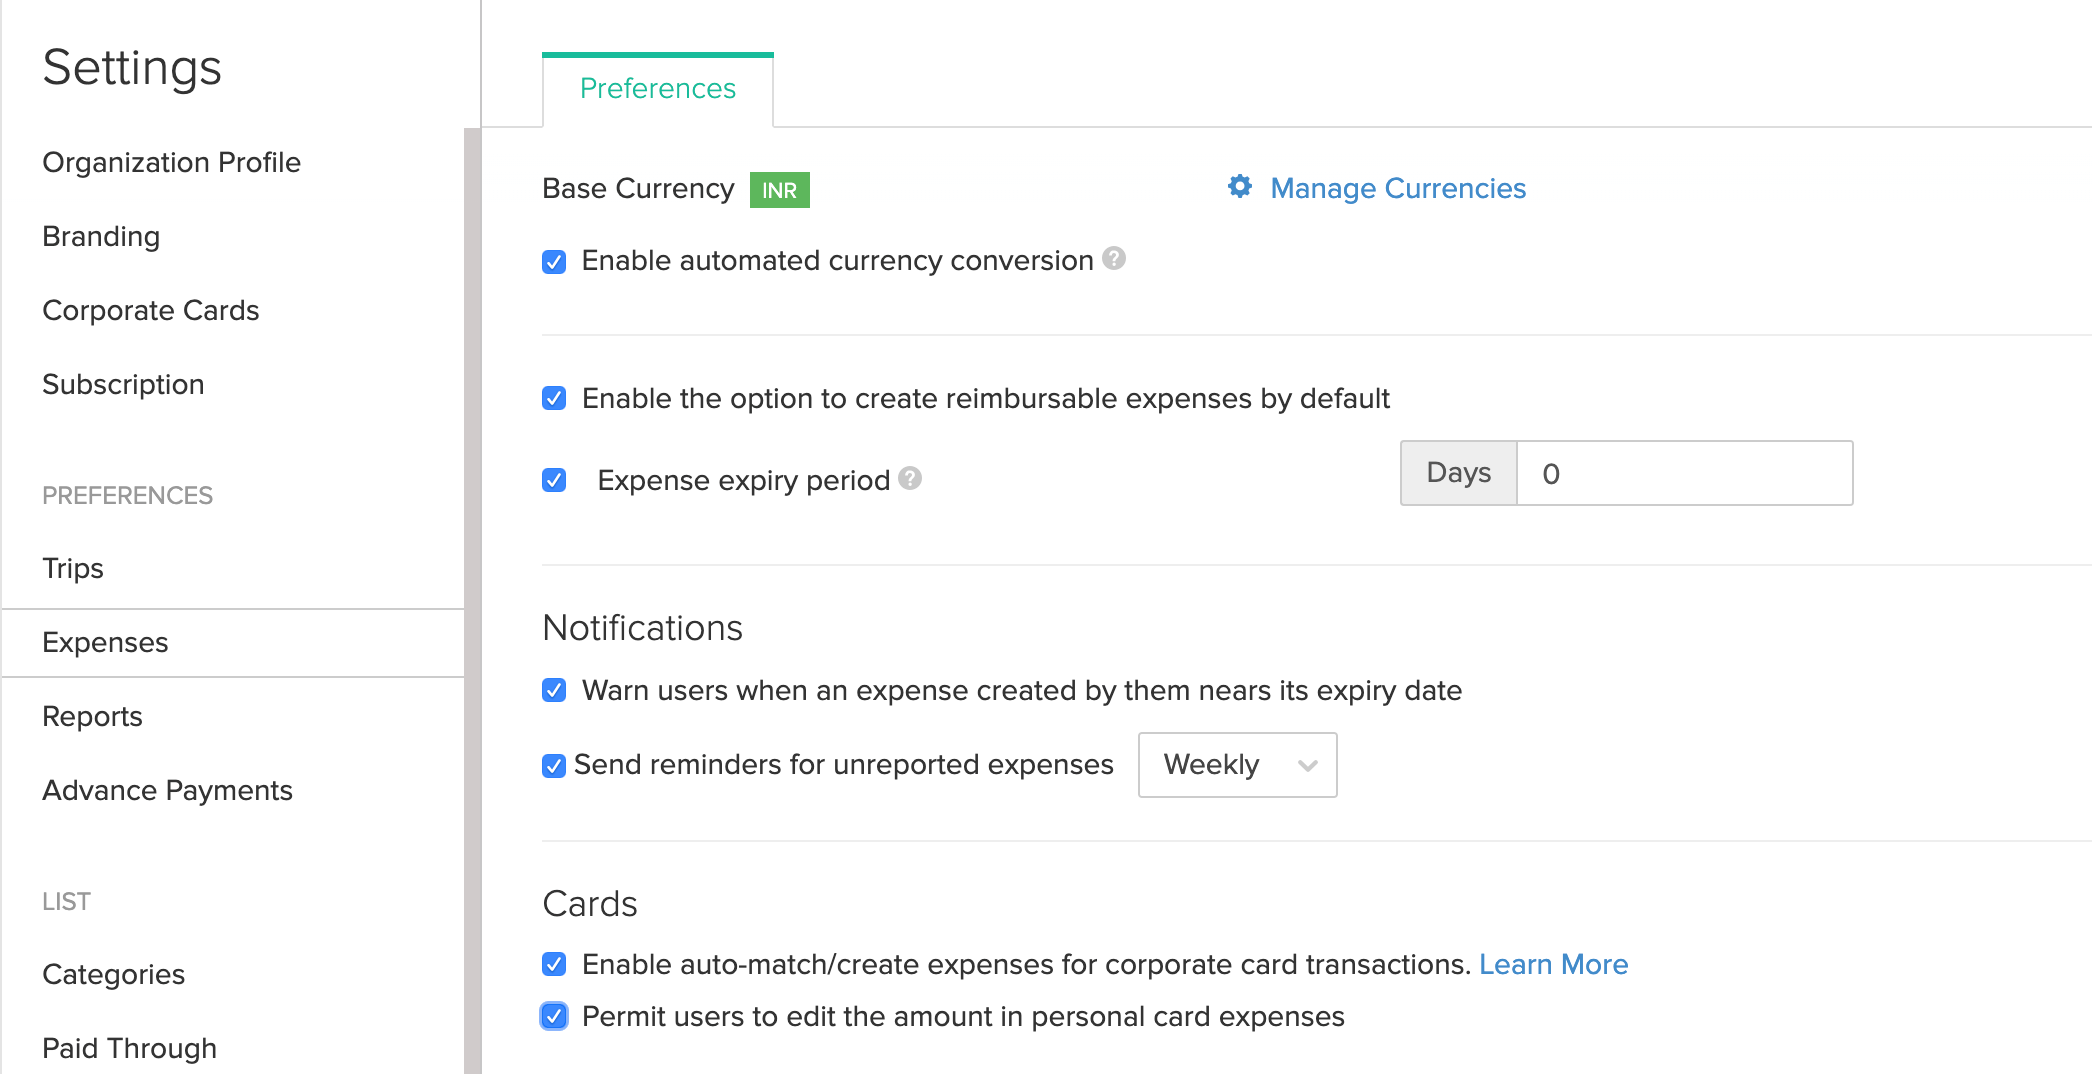 Expenses Preferences